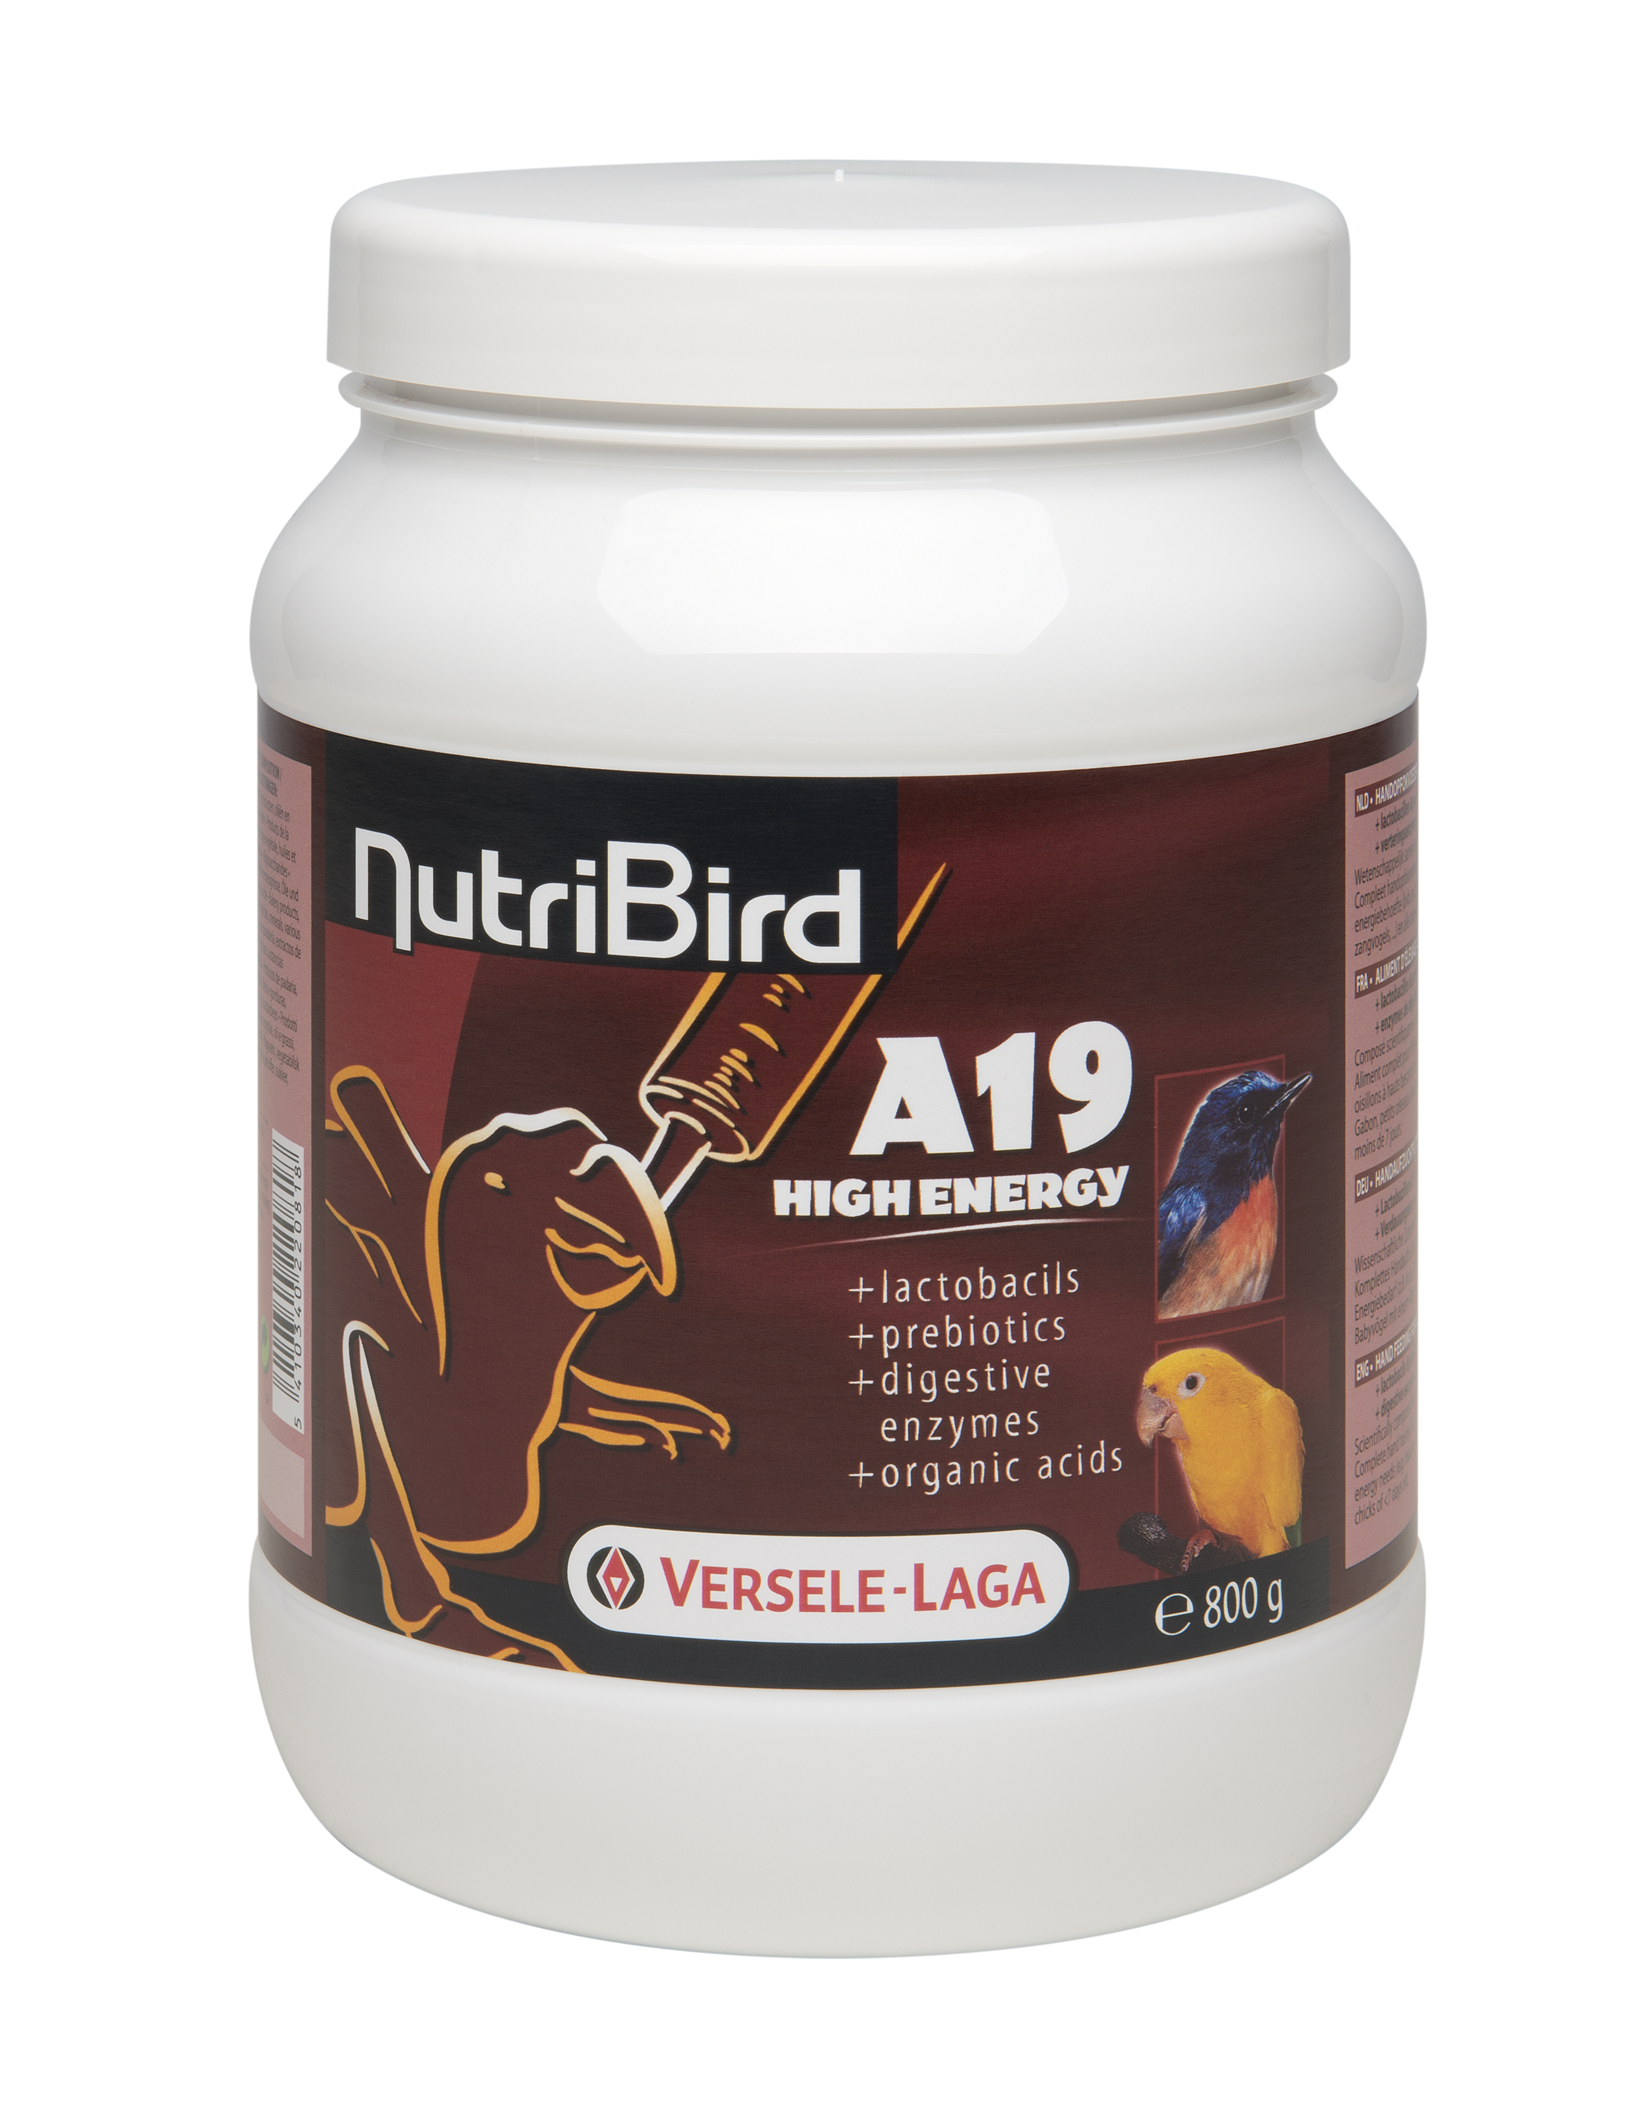 VERSELA-LAGA Dokrmovací směs NutriBird A19 High Energy 800 g